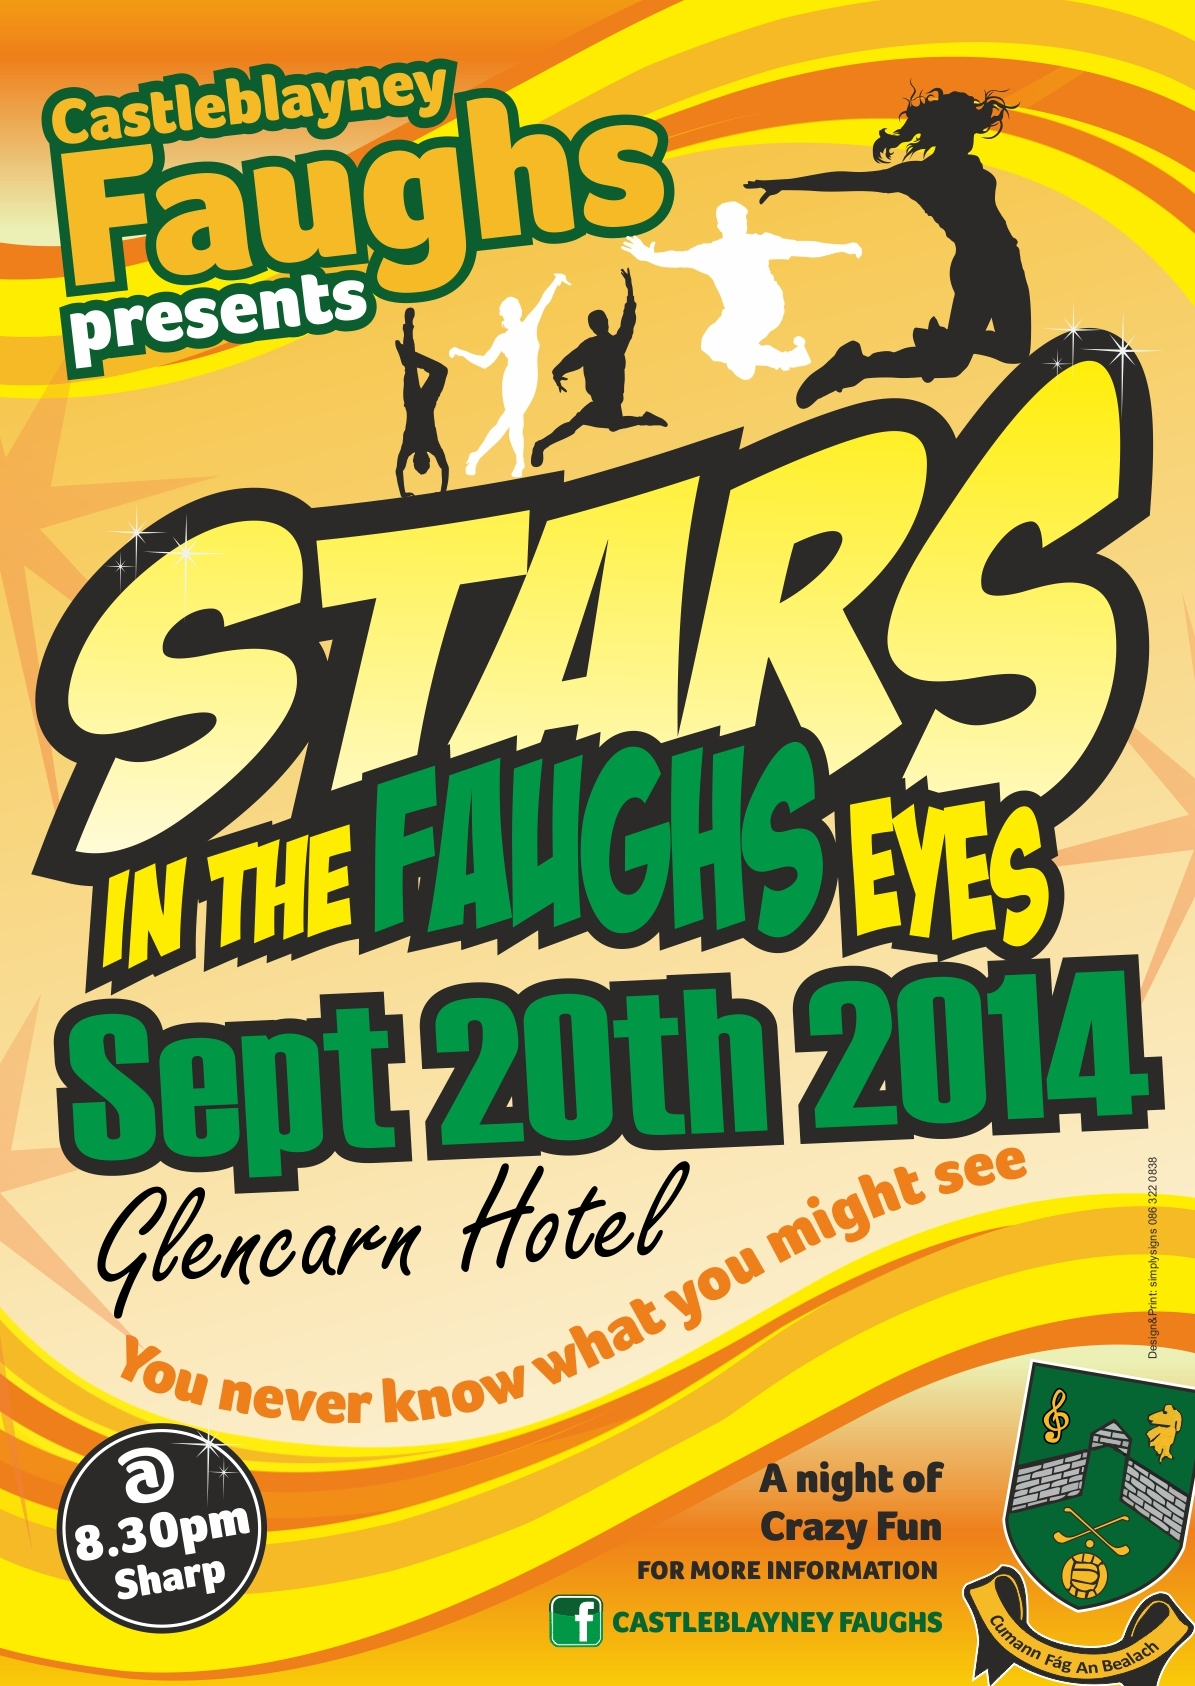 Stars in the Faughs Eyes